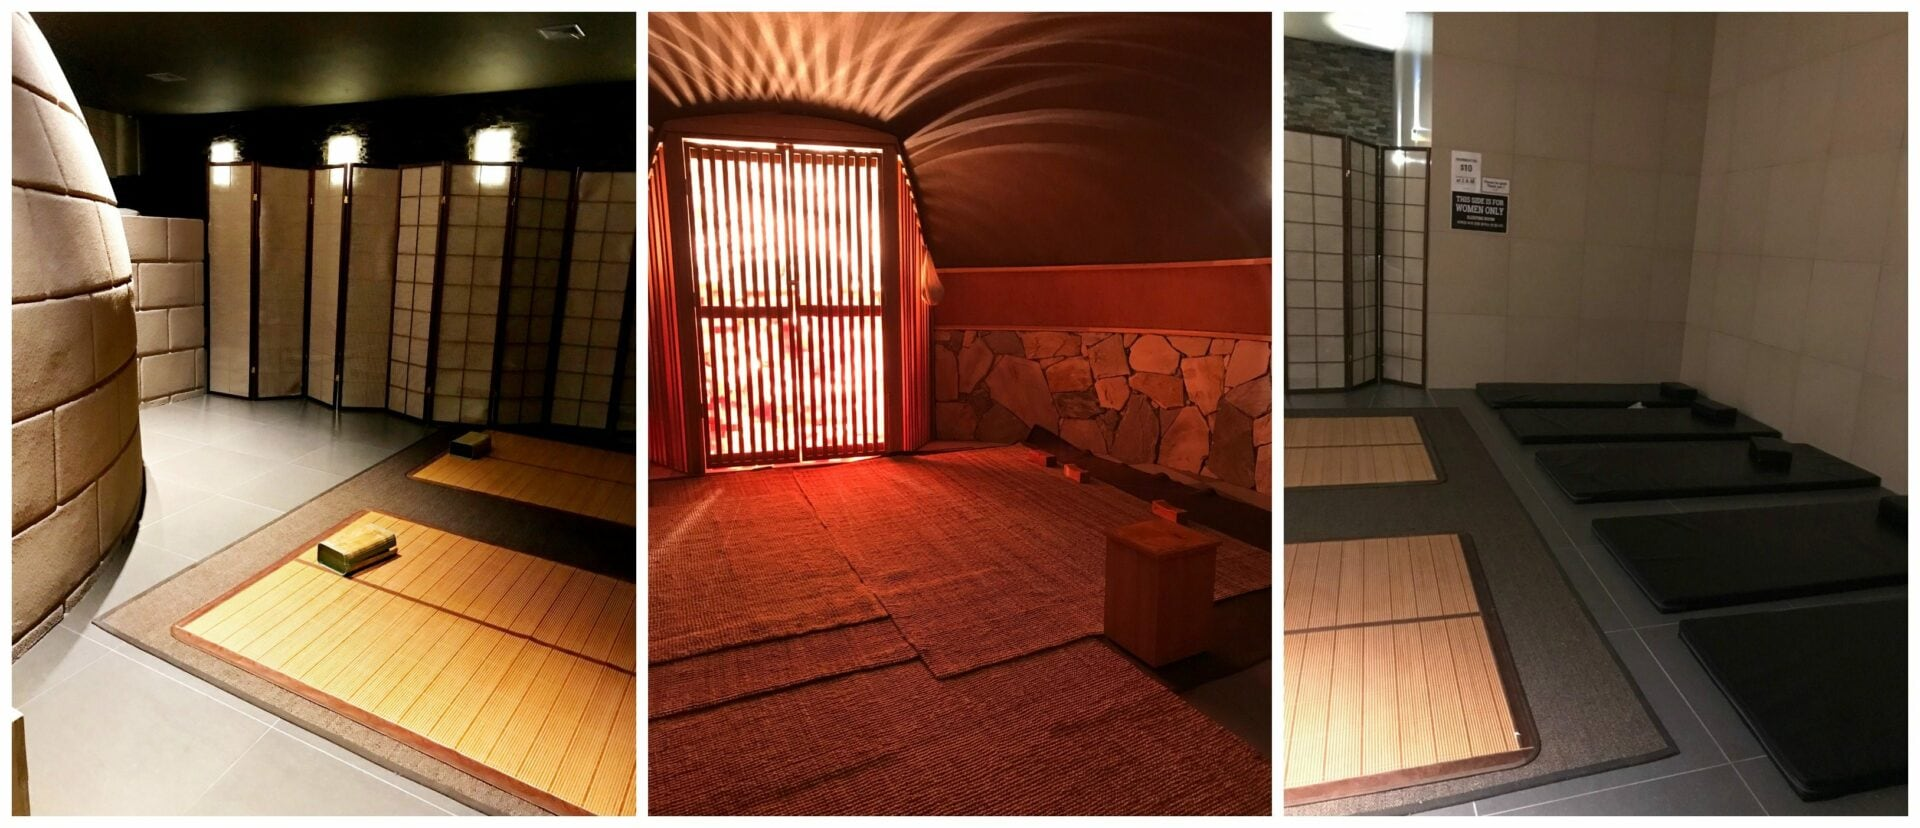 Island spa sauna korean spa in edison plus 25 gift card island spa sauna korean spa in edison altavistaventures Images